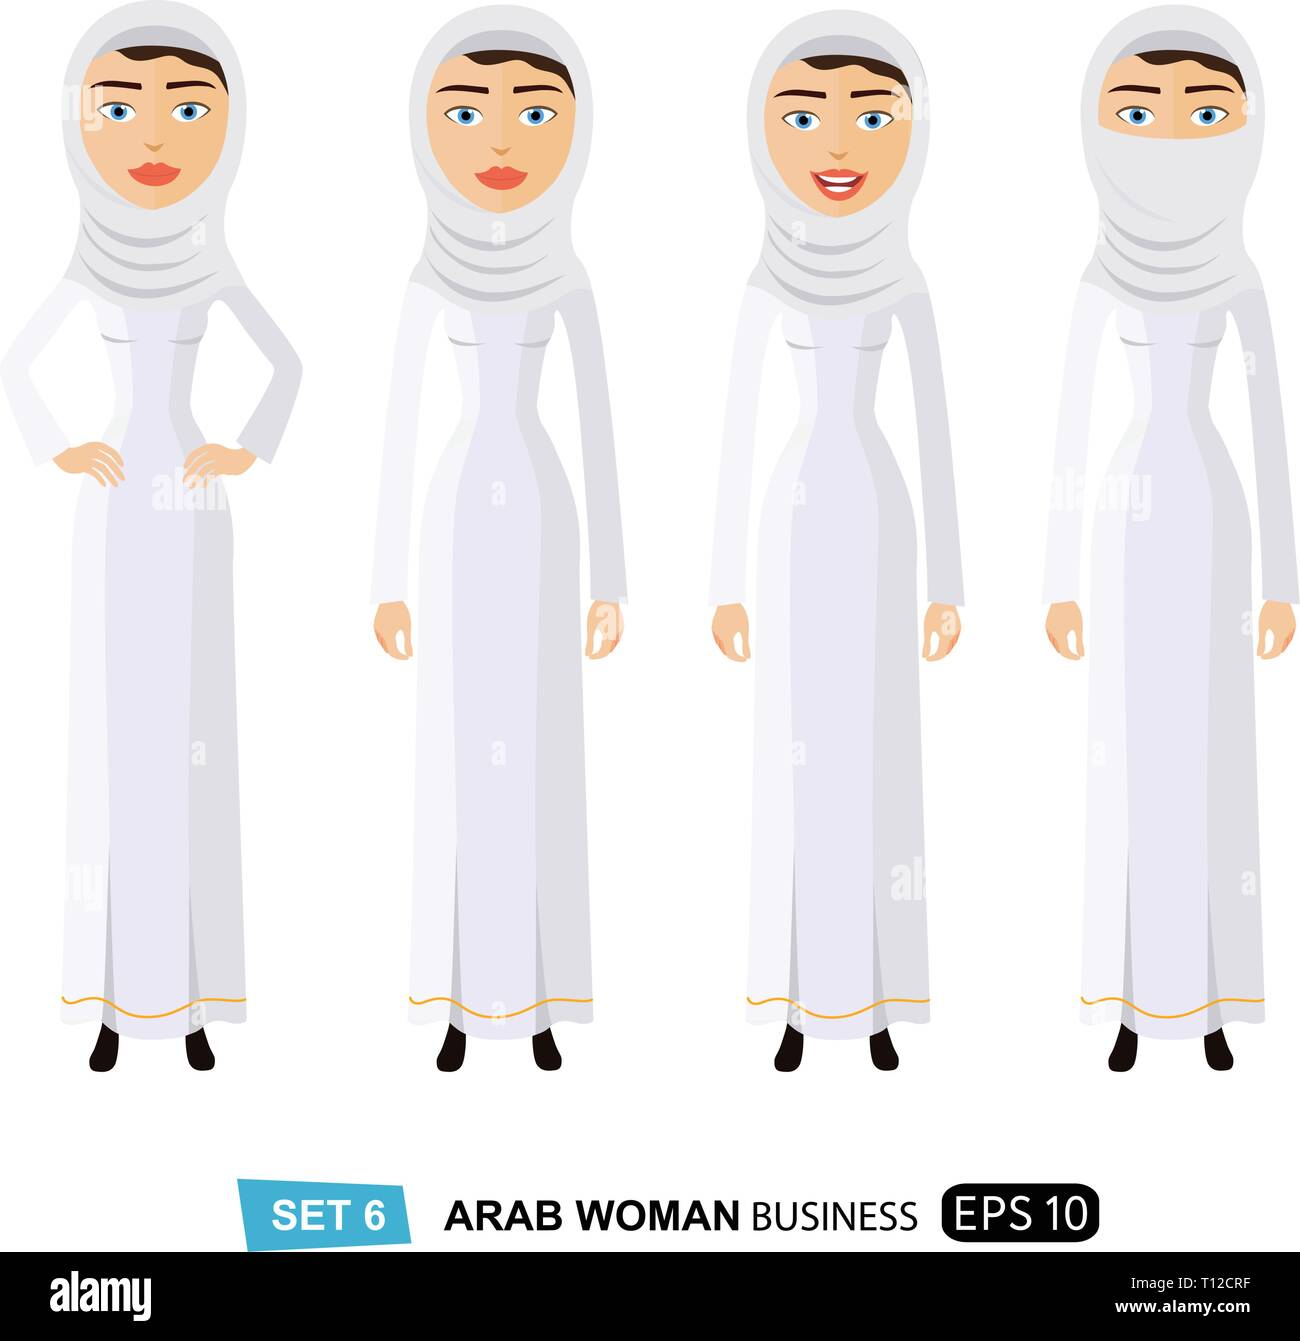 Arab business woman in a white hijab with natural curly hair flat cartoon vector illustration isolated on white eps 10 - Stock Vector